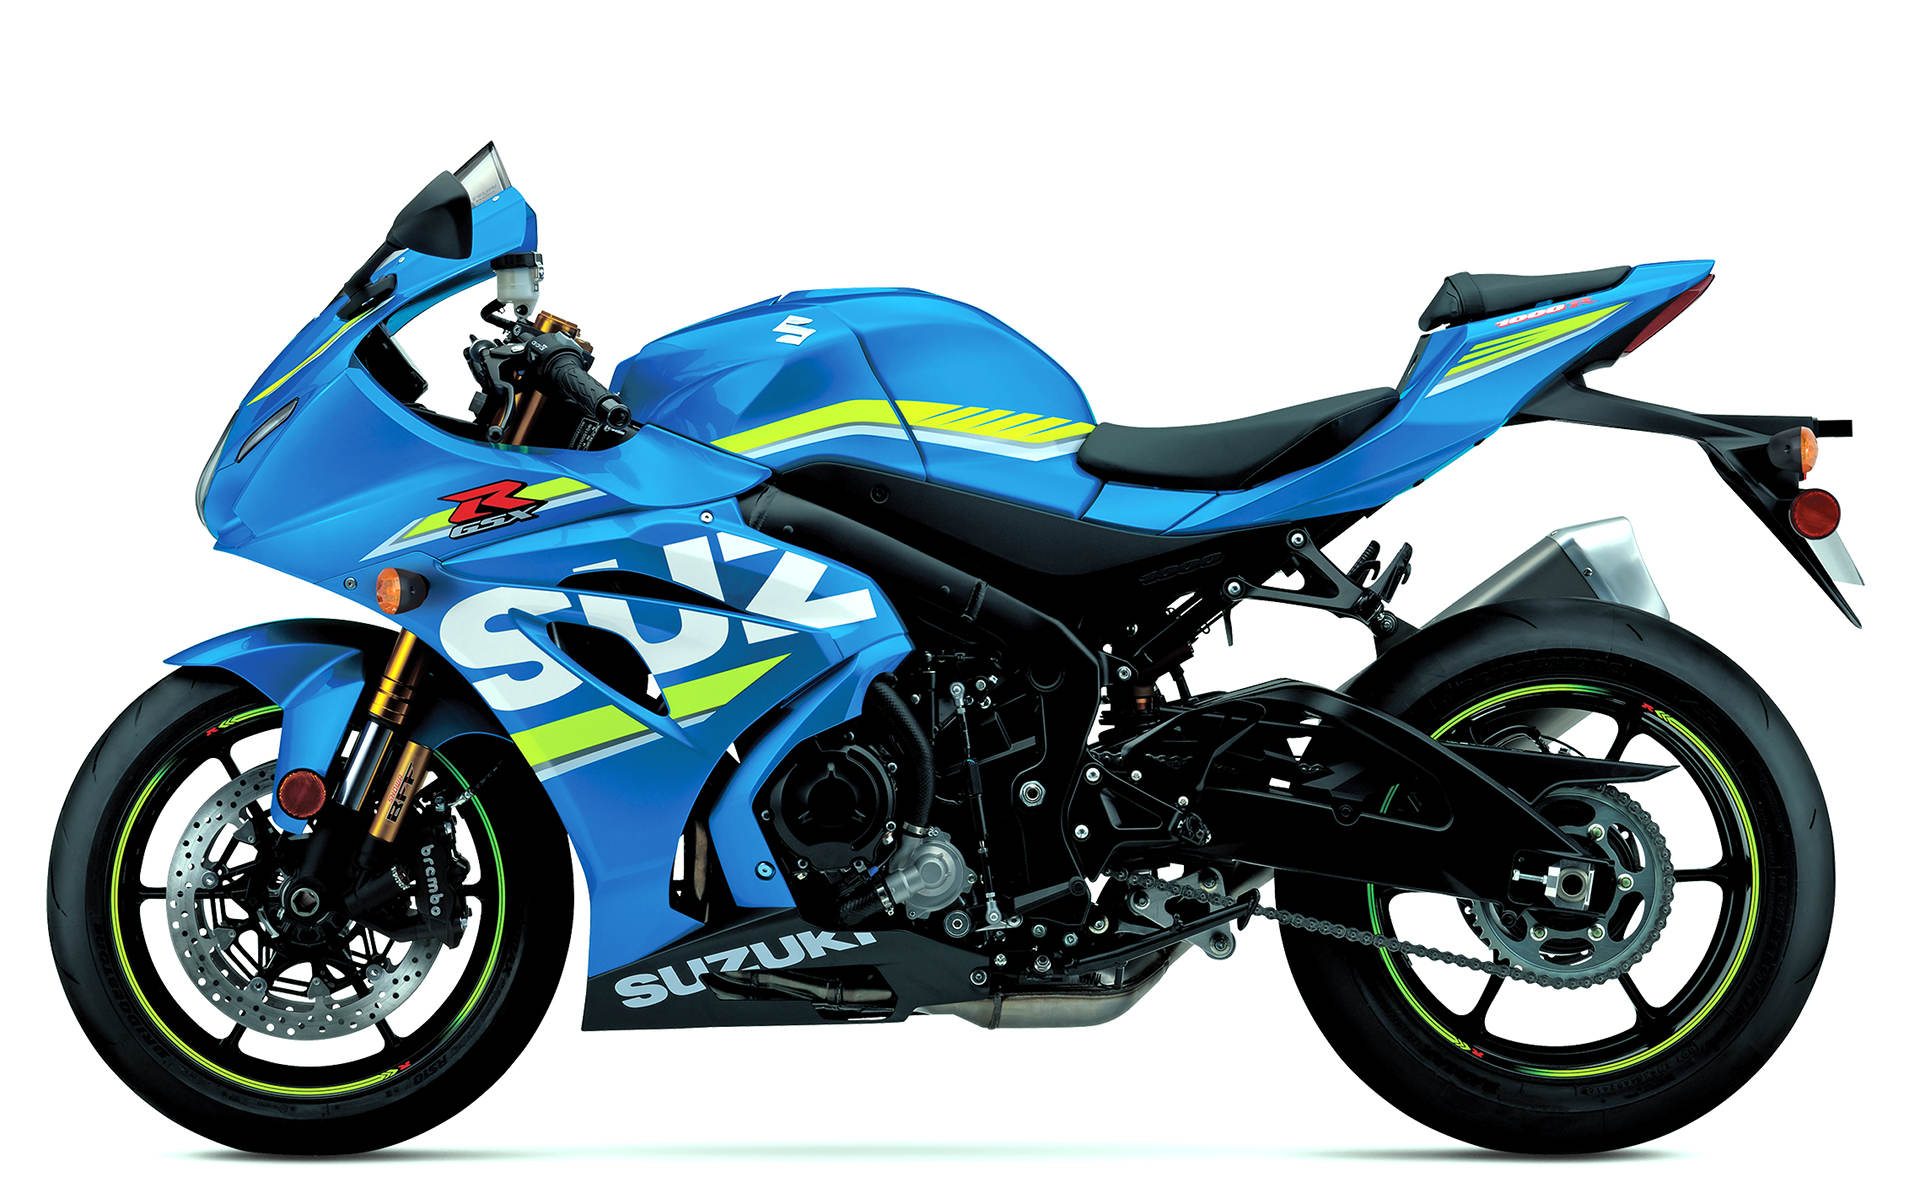 2018 suzuki gsxr 1000. simple suzuki suzuki announces colors and prices on several models u2013 new gsxr1000  starting at 14599 with 2018 suzuki gsxr 1000